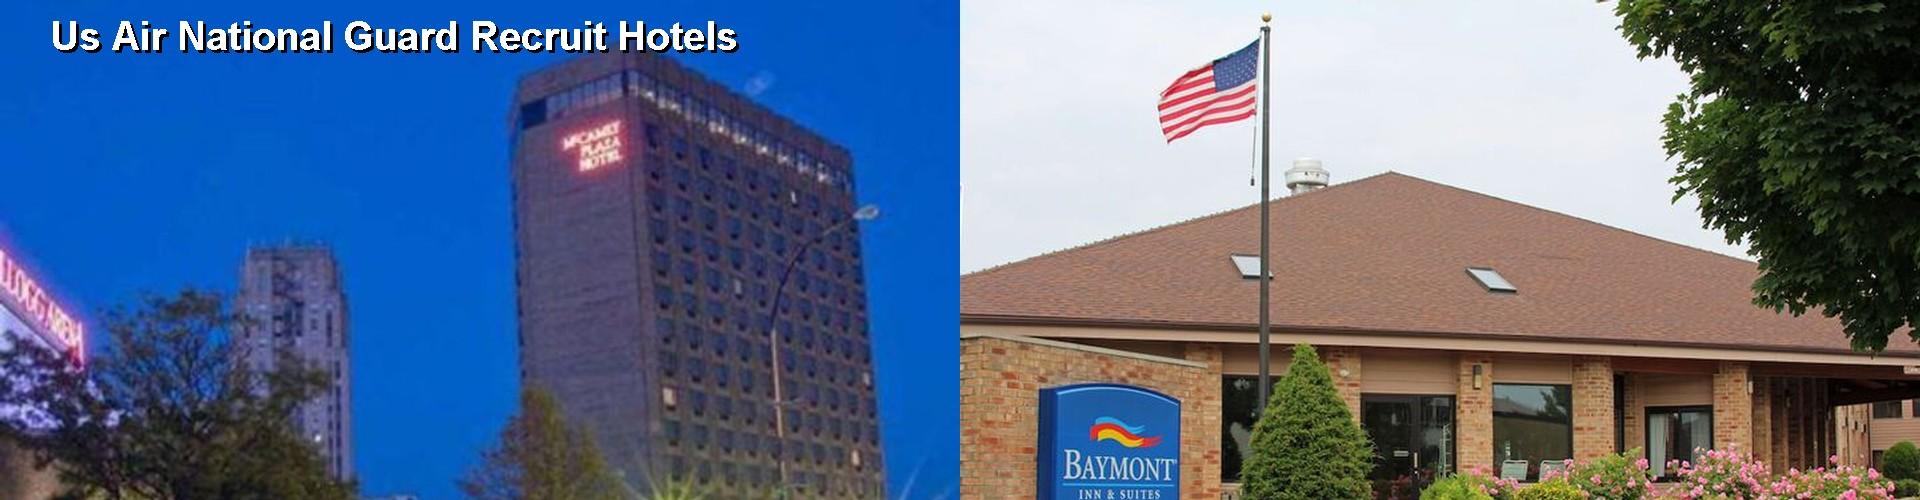 5 Best Hotels near Us Air National Guard Recruit